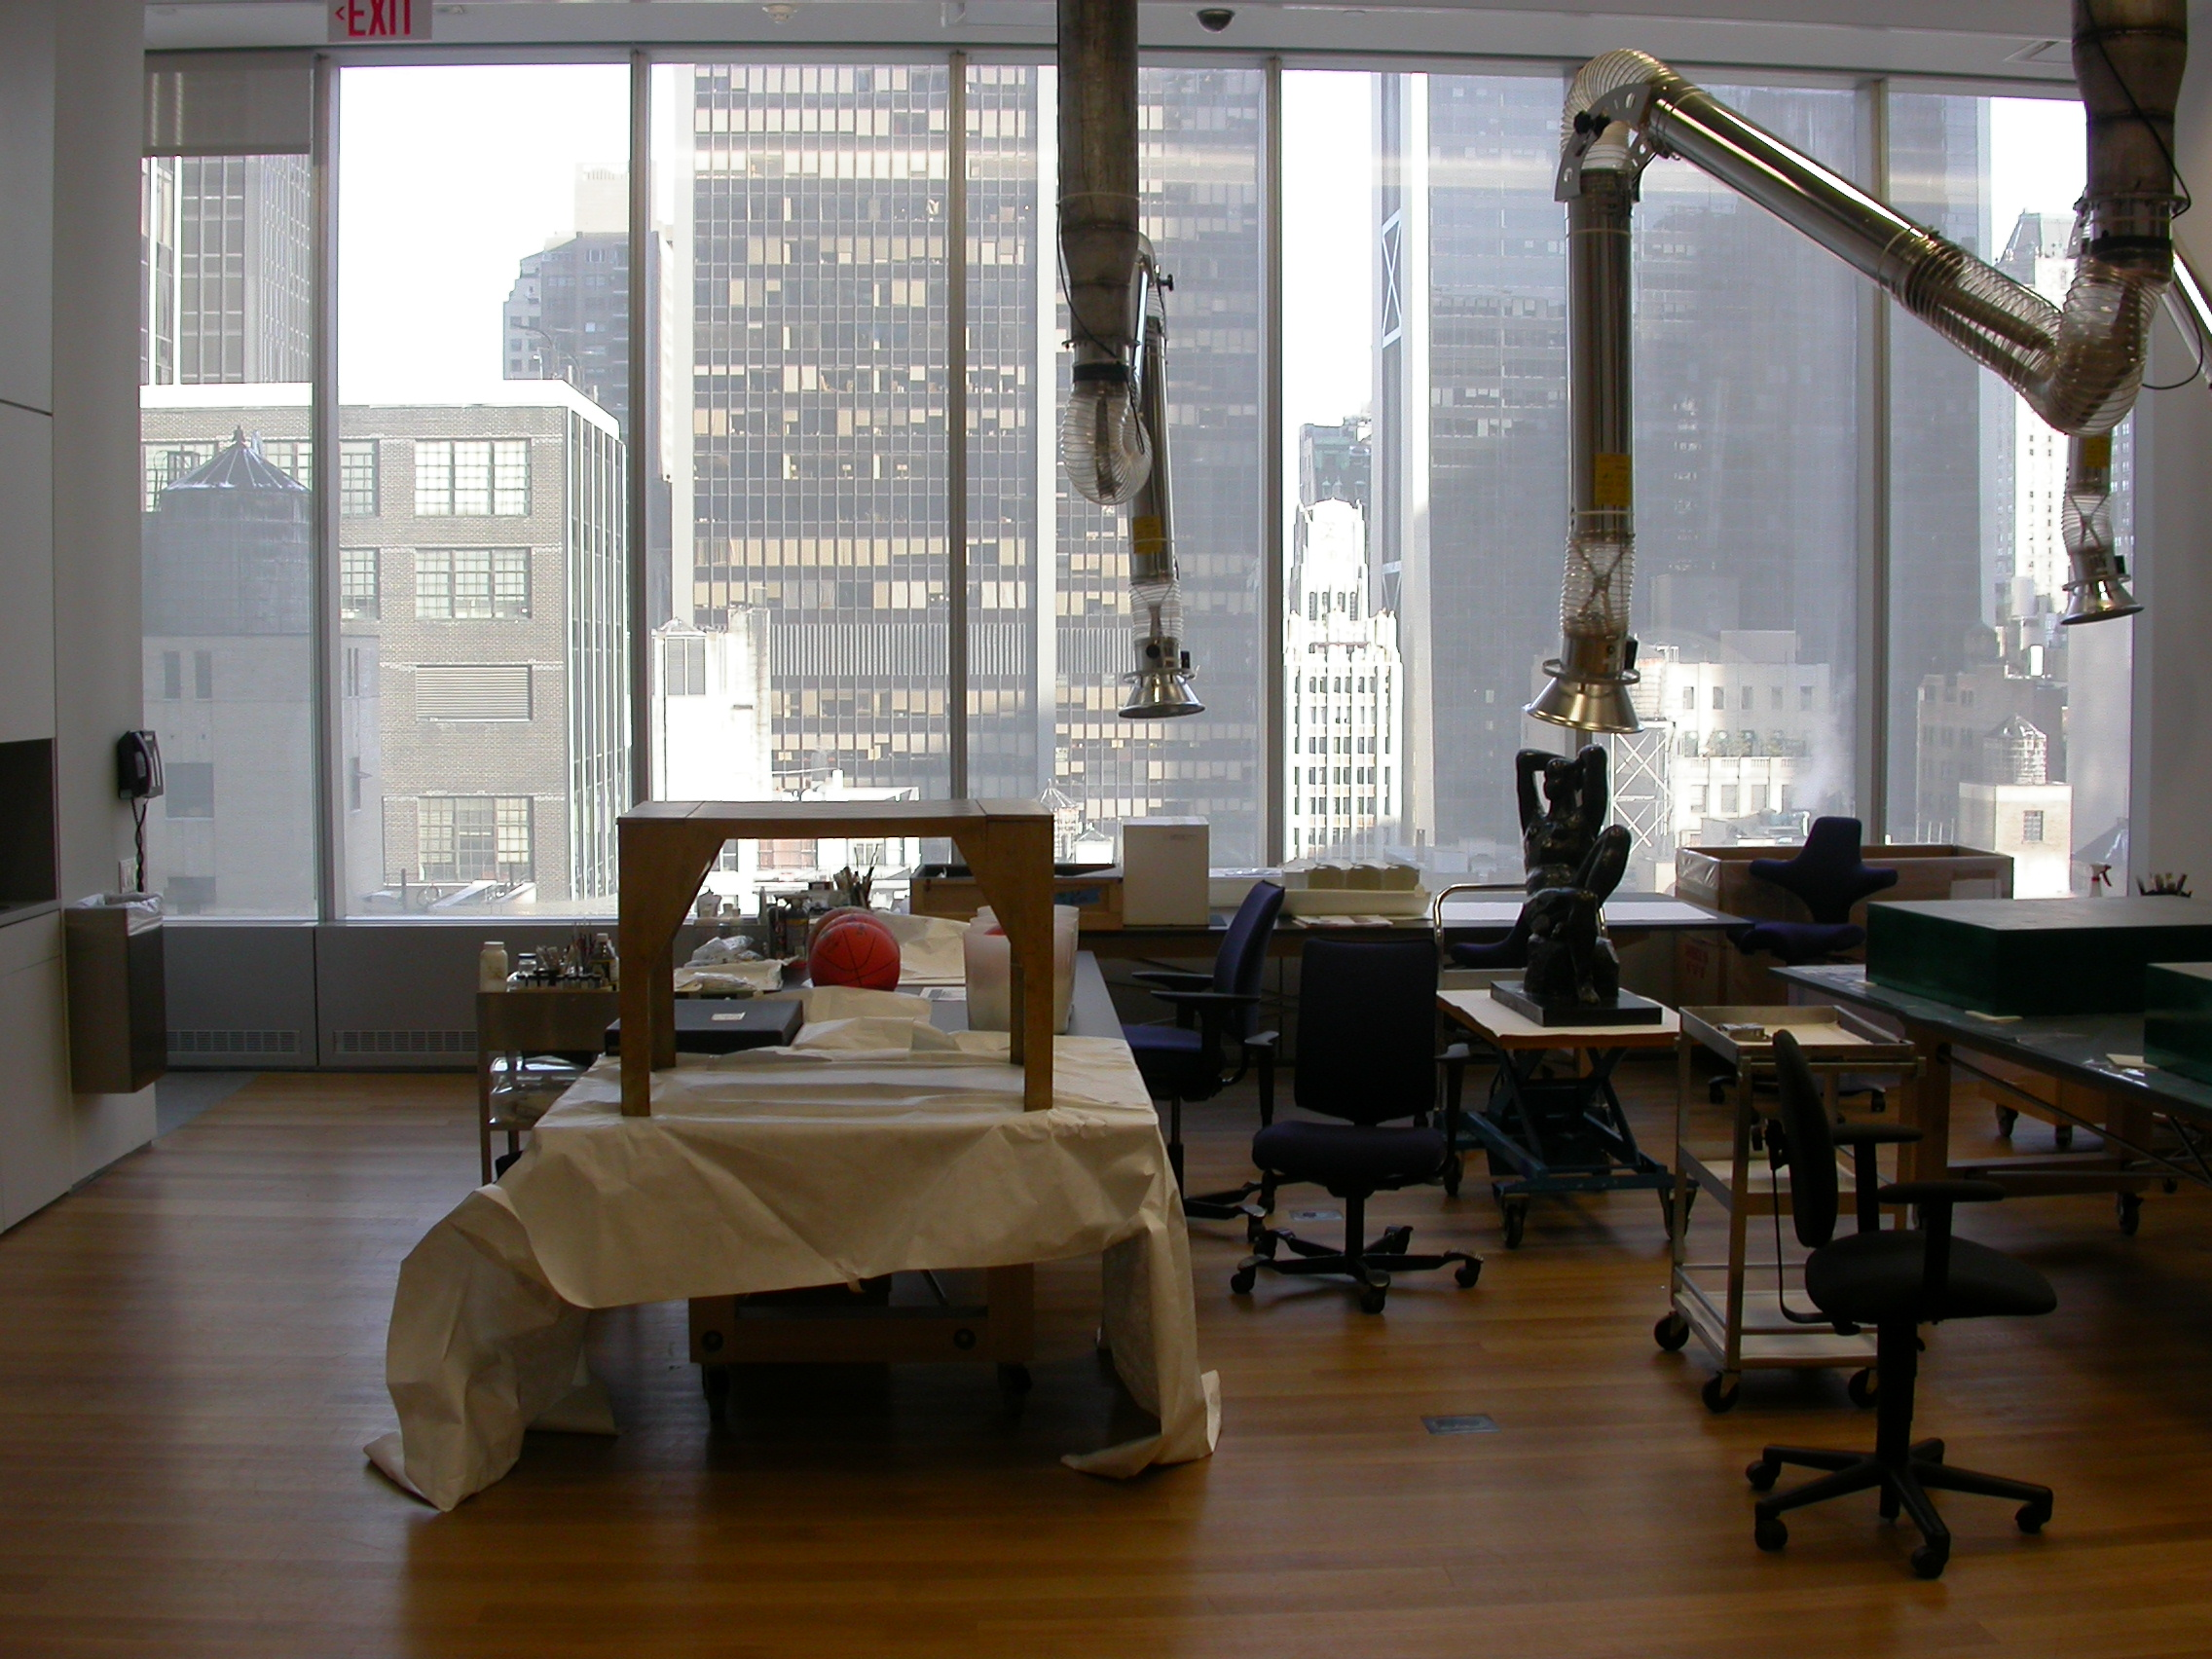 Looking out the windows of MoMA's Conservation Studio